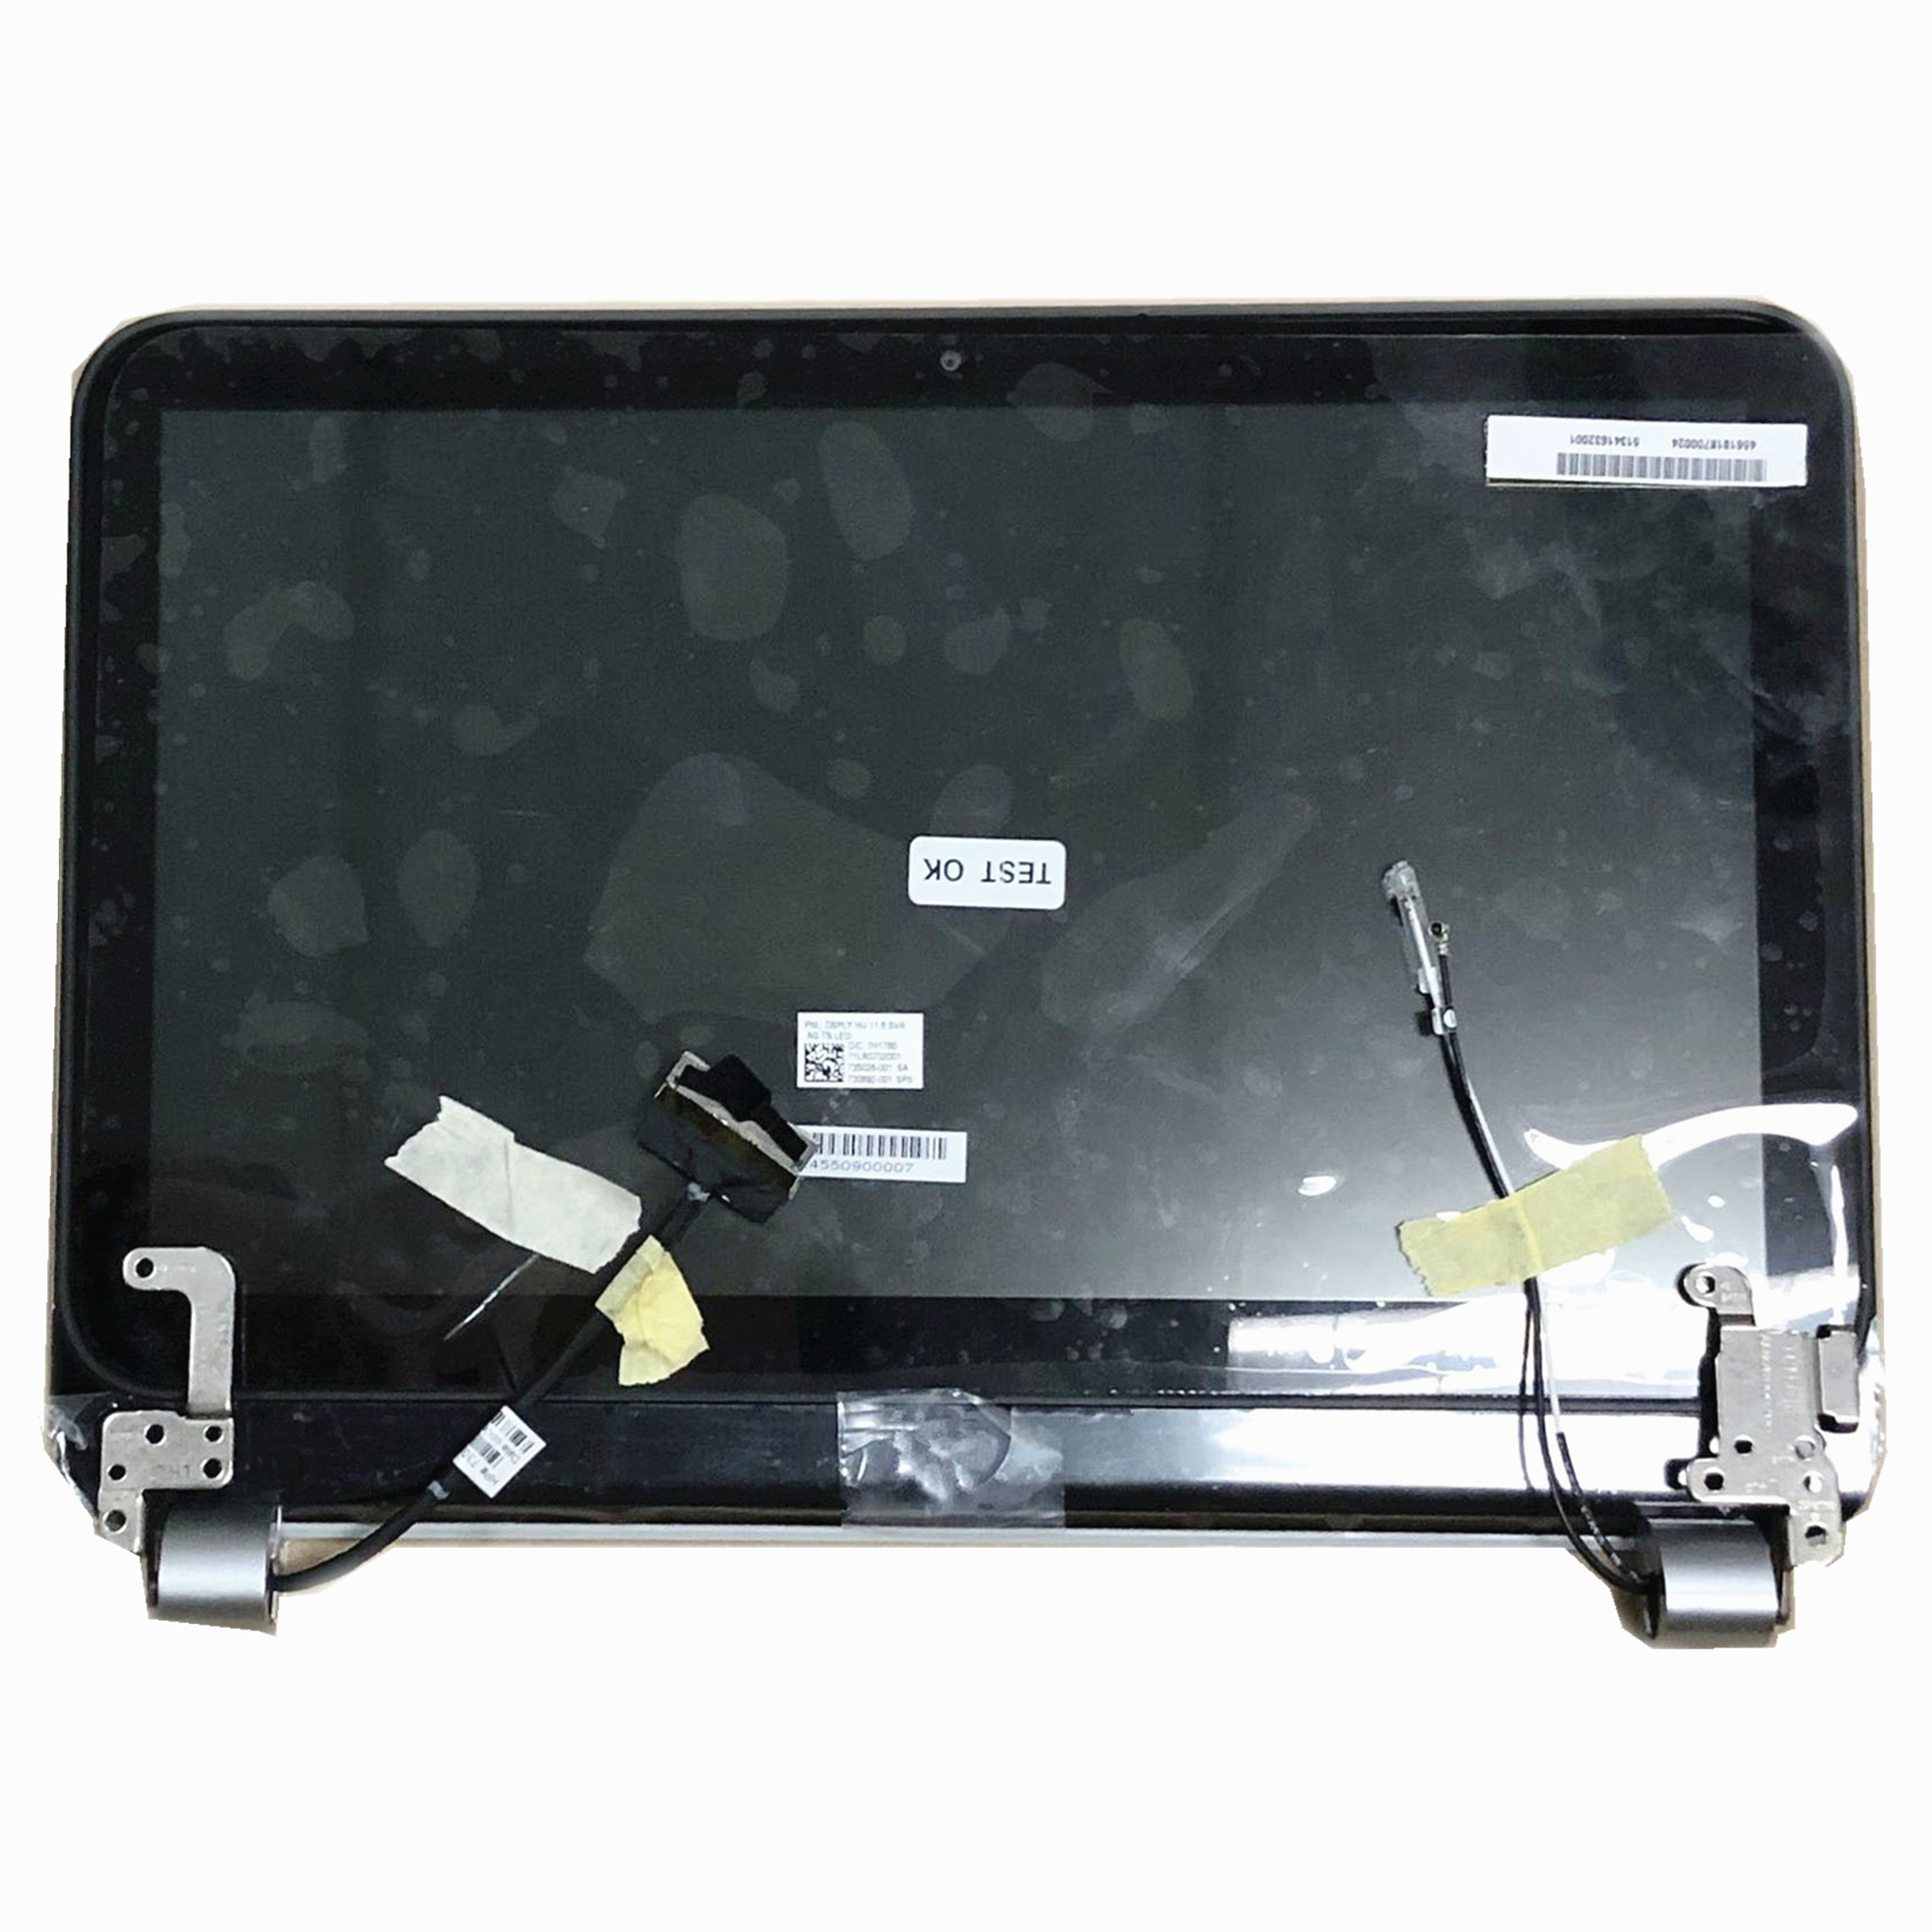 12.1 LCD Screen Touch Digitizer Assembly CABLE HINGE for HP Elitebook 2760P 2760